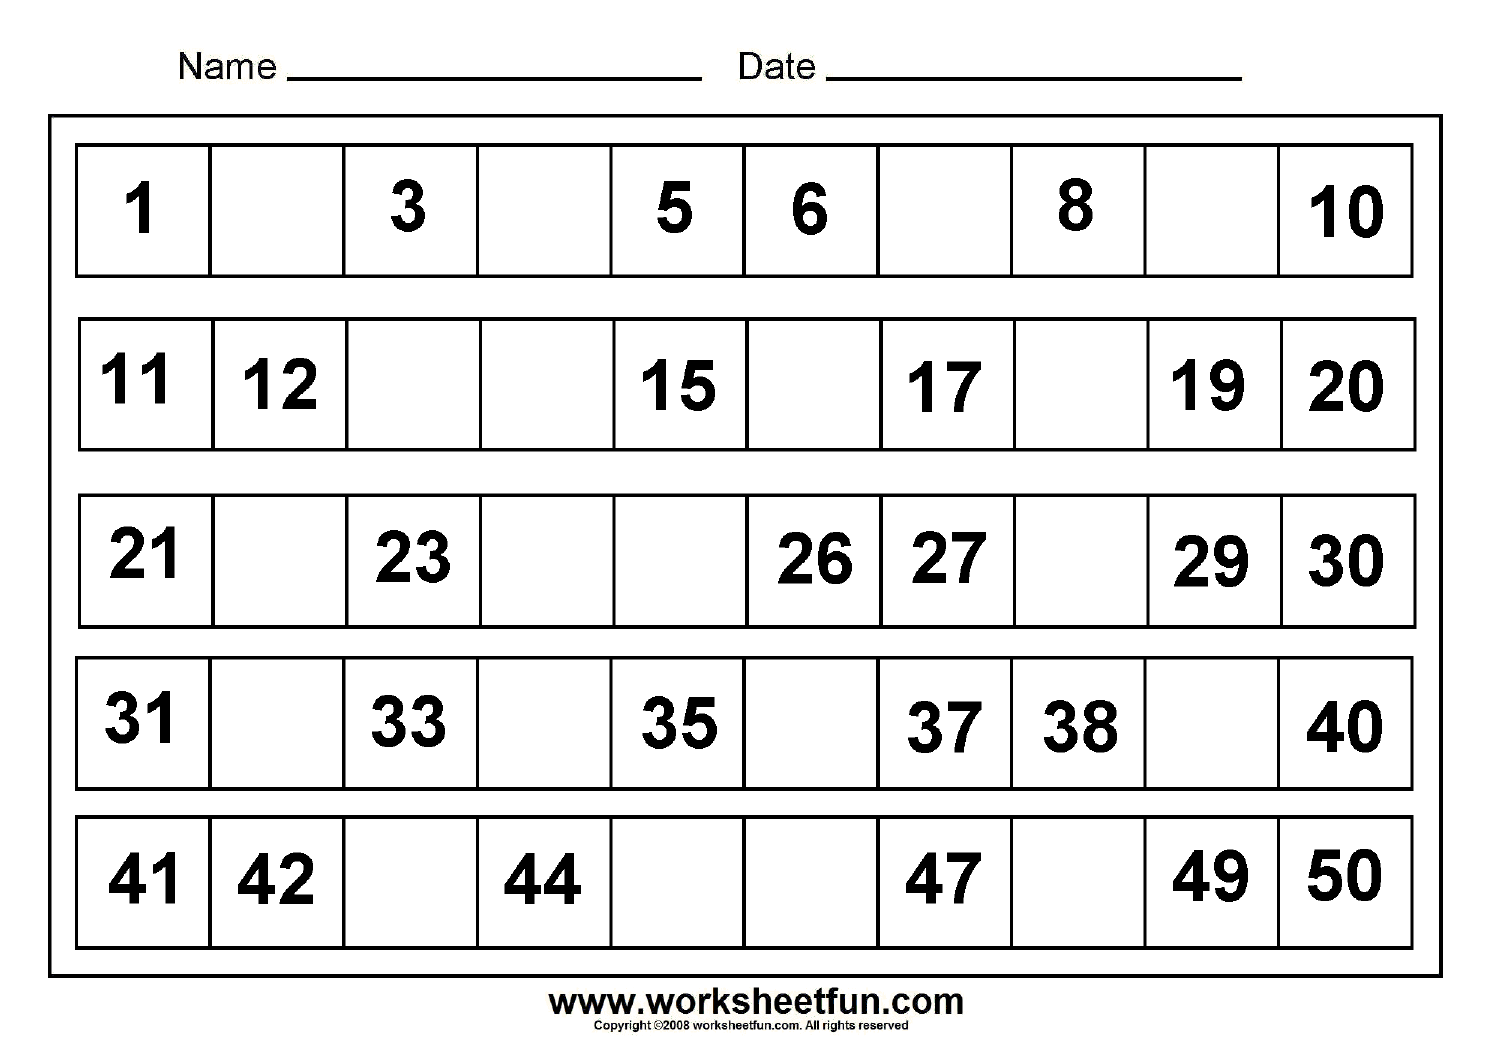 Best Images of Free Printable Missing Numbers 1 100 Worksheet ...